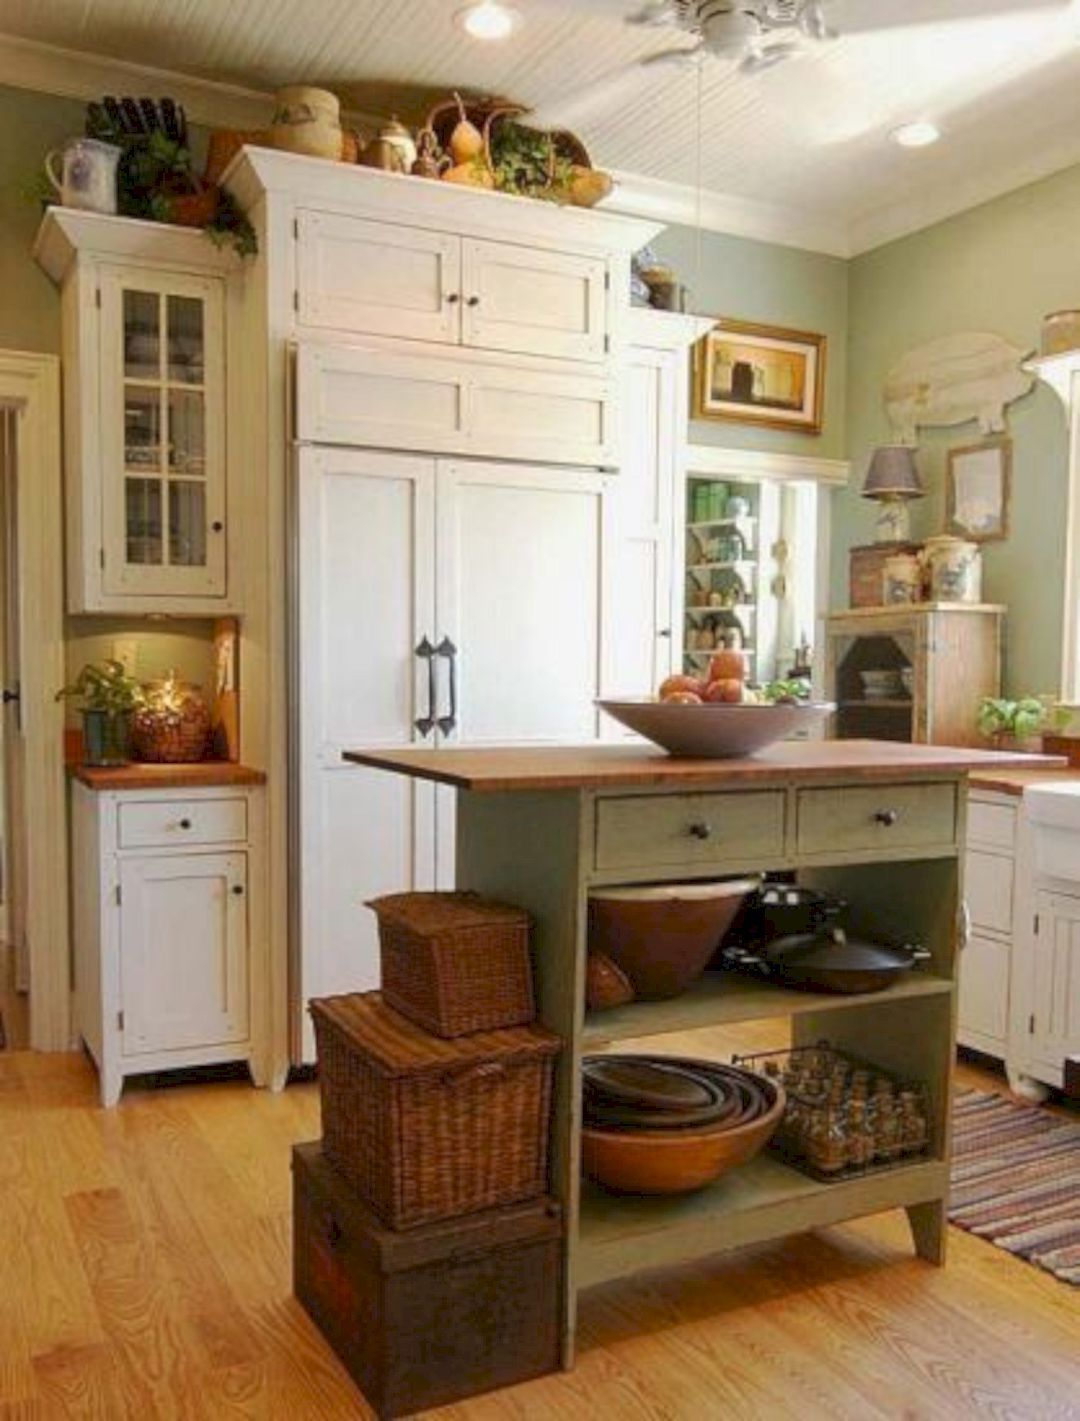 15 Amazing English Country Room Decoration Ideas Cottage Style Kitchen Country Kitchen Home Kitchens